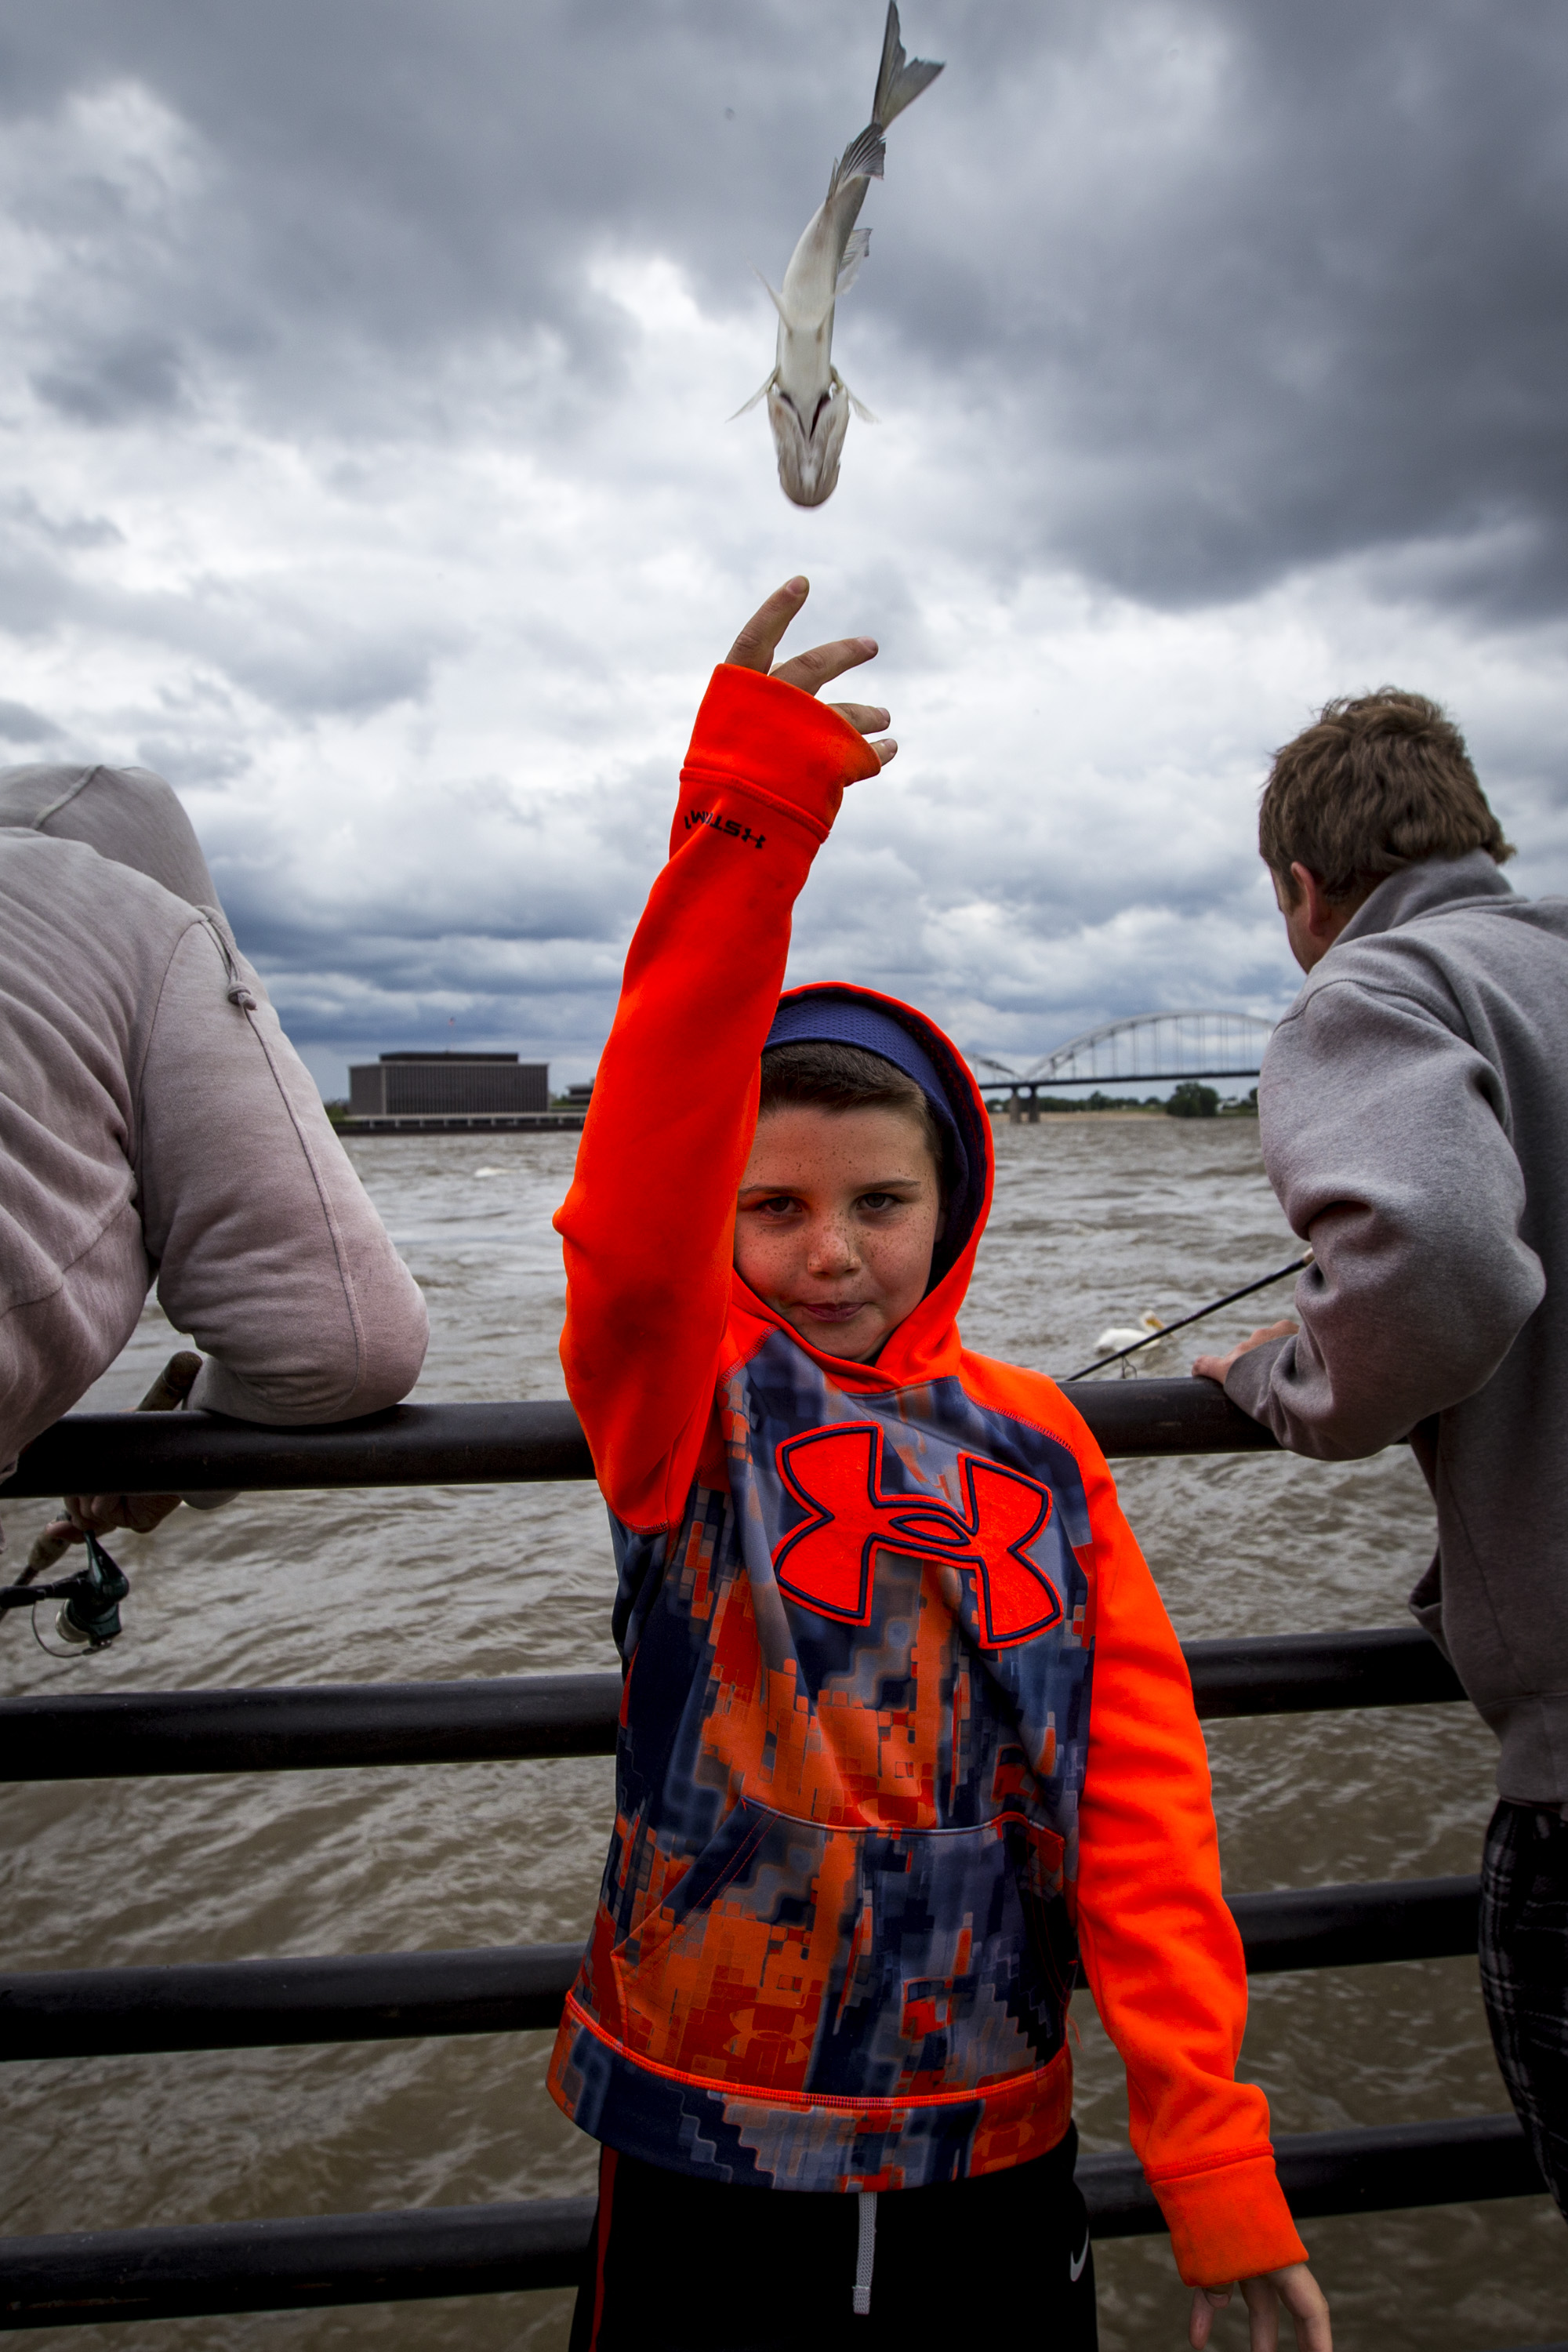 Anthony Harvey, 9, of Davenport tosses a small fish caught by one of the men back into the river, having deemed it too small to keep, at the old Rhythm City Casino site in Davenport, Monday, May 22, 2017.